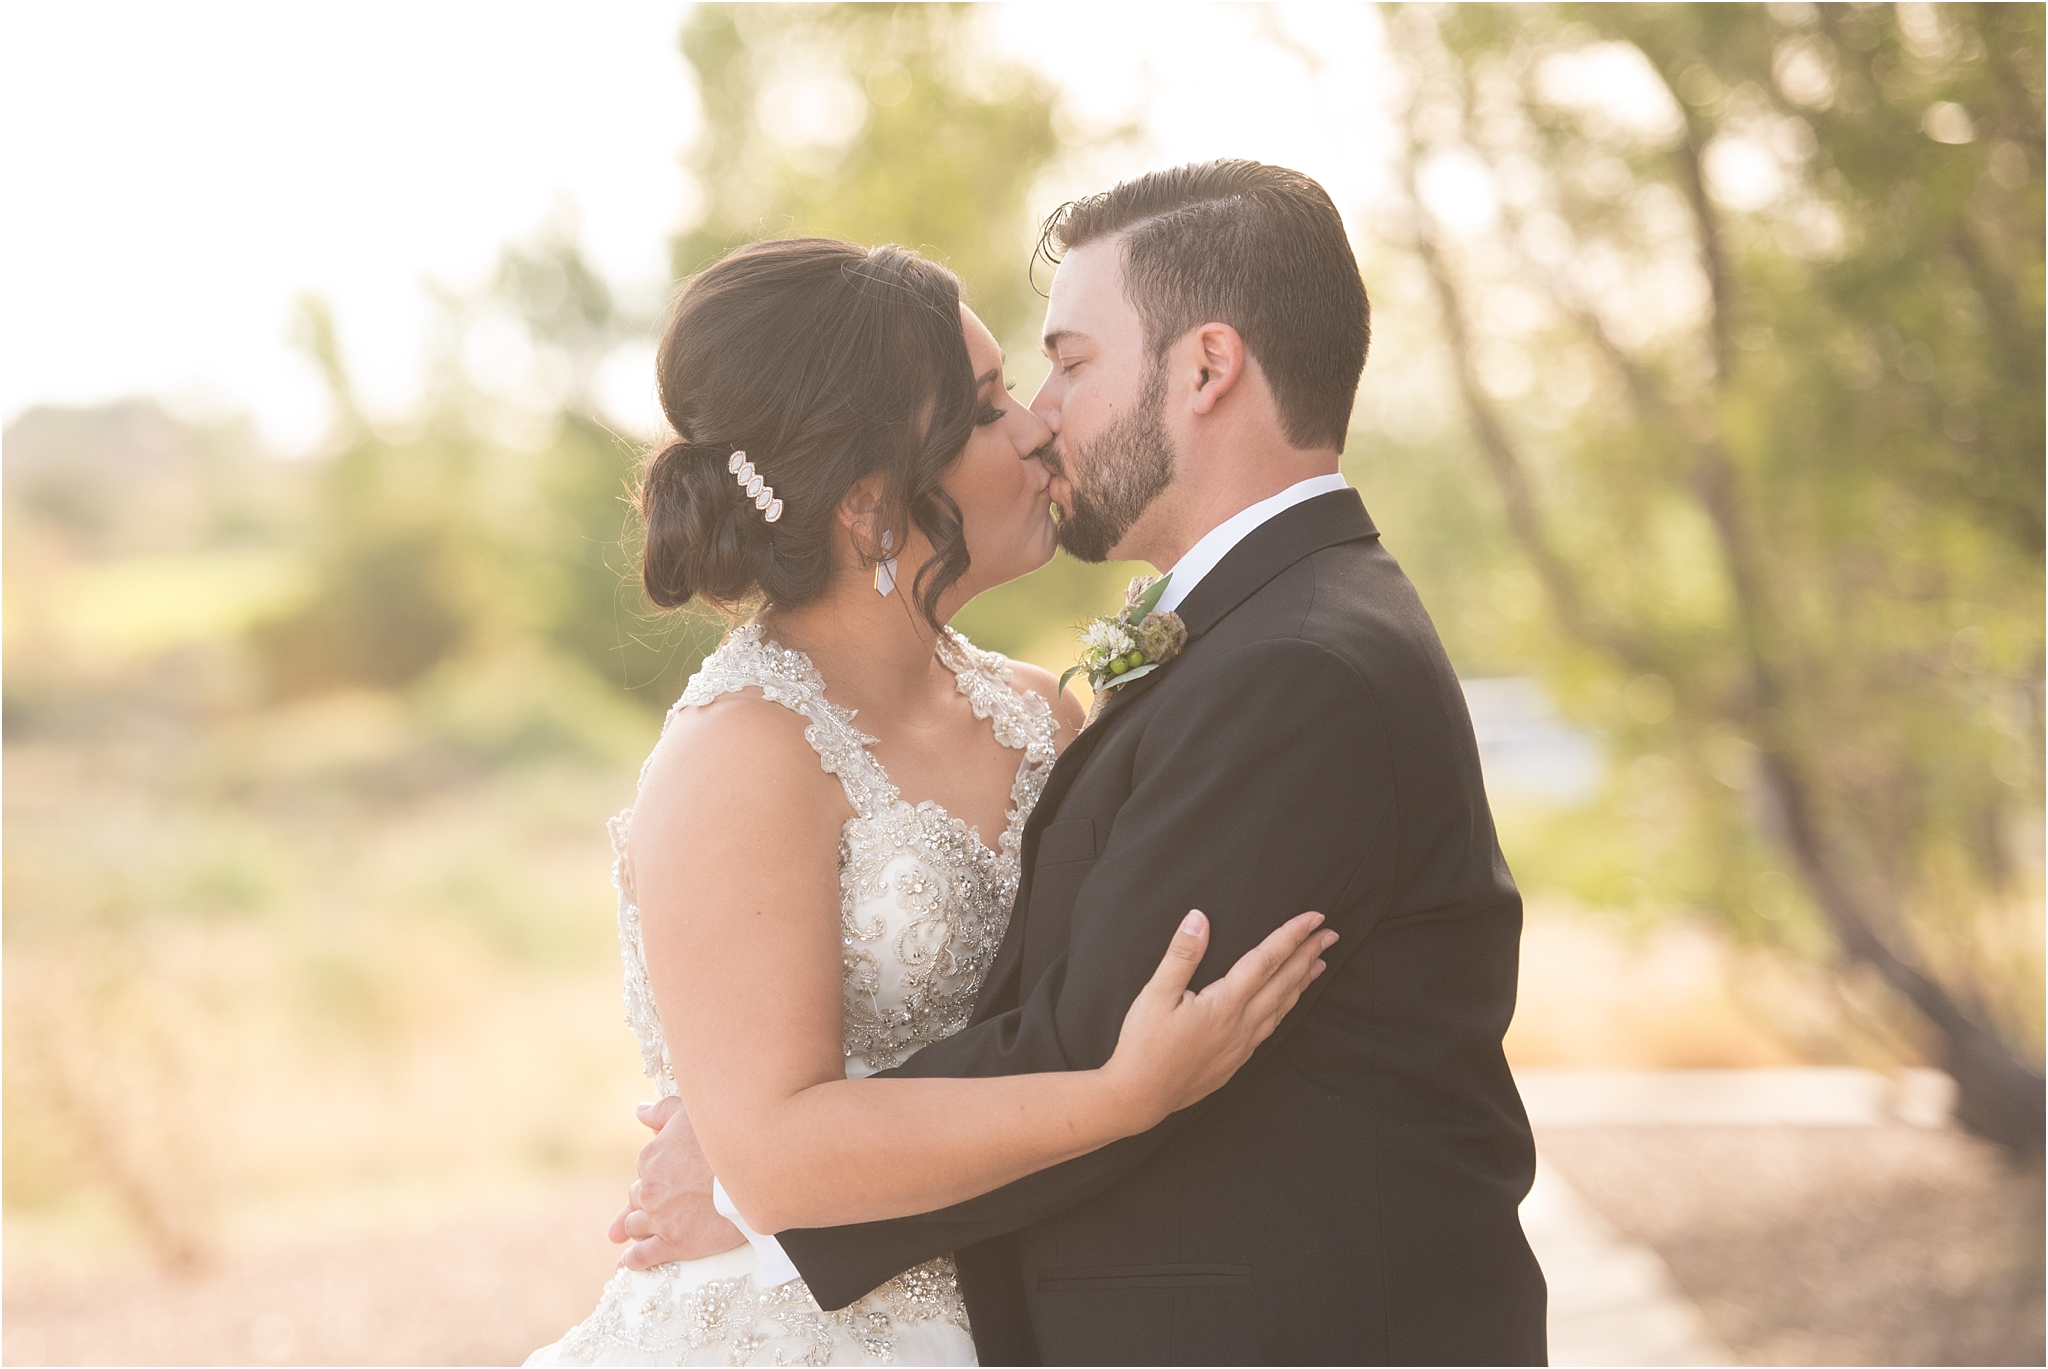 kayla kitts photography - albuquerque wedding photographer - albuquerque venue - hyatt tamaya - hyatt tamaya wedding - c johnson makeup - little sparrow cookies - simply sweet by darci_0024.jpg